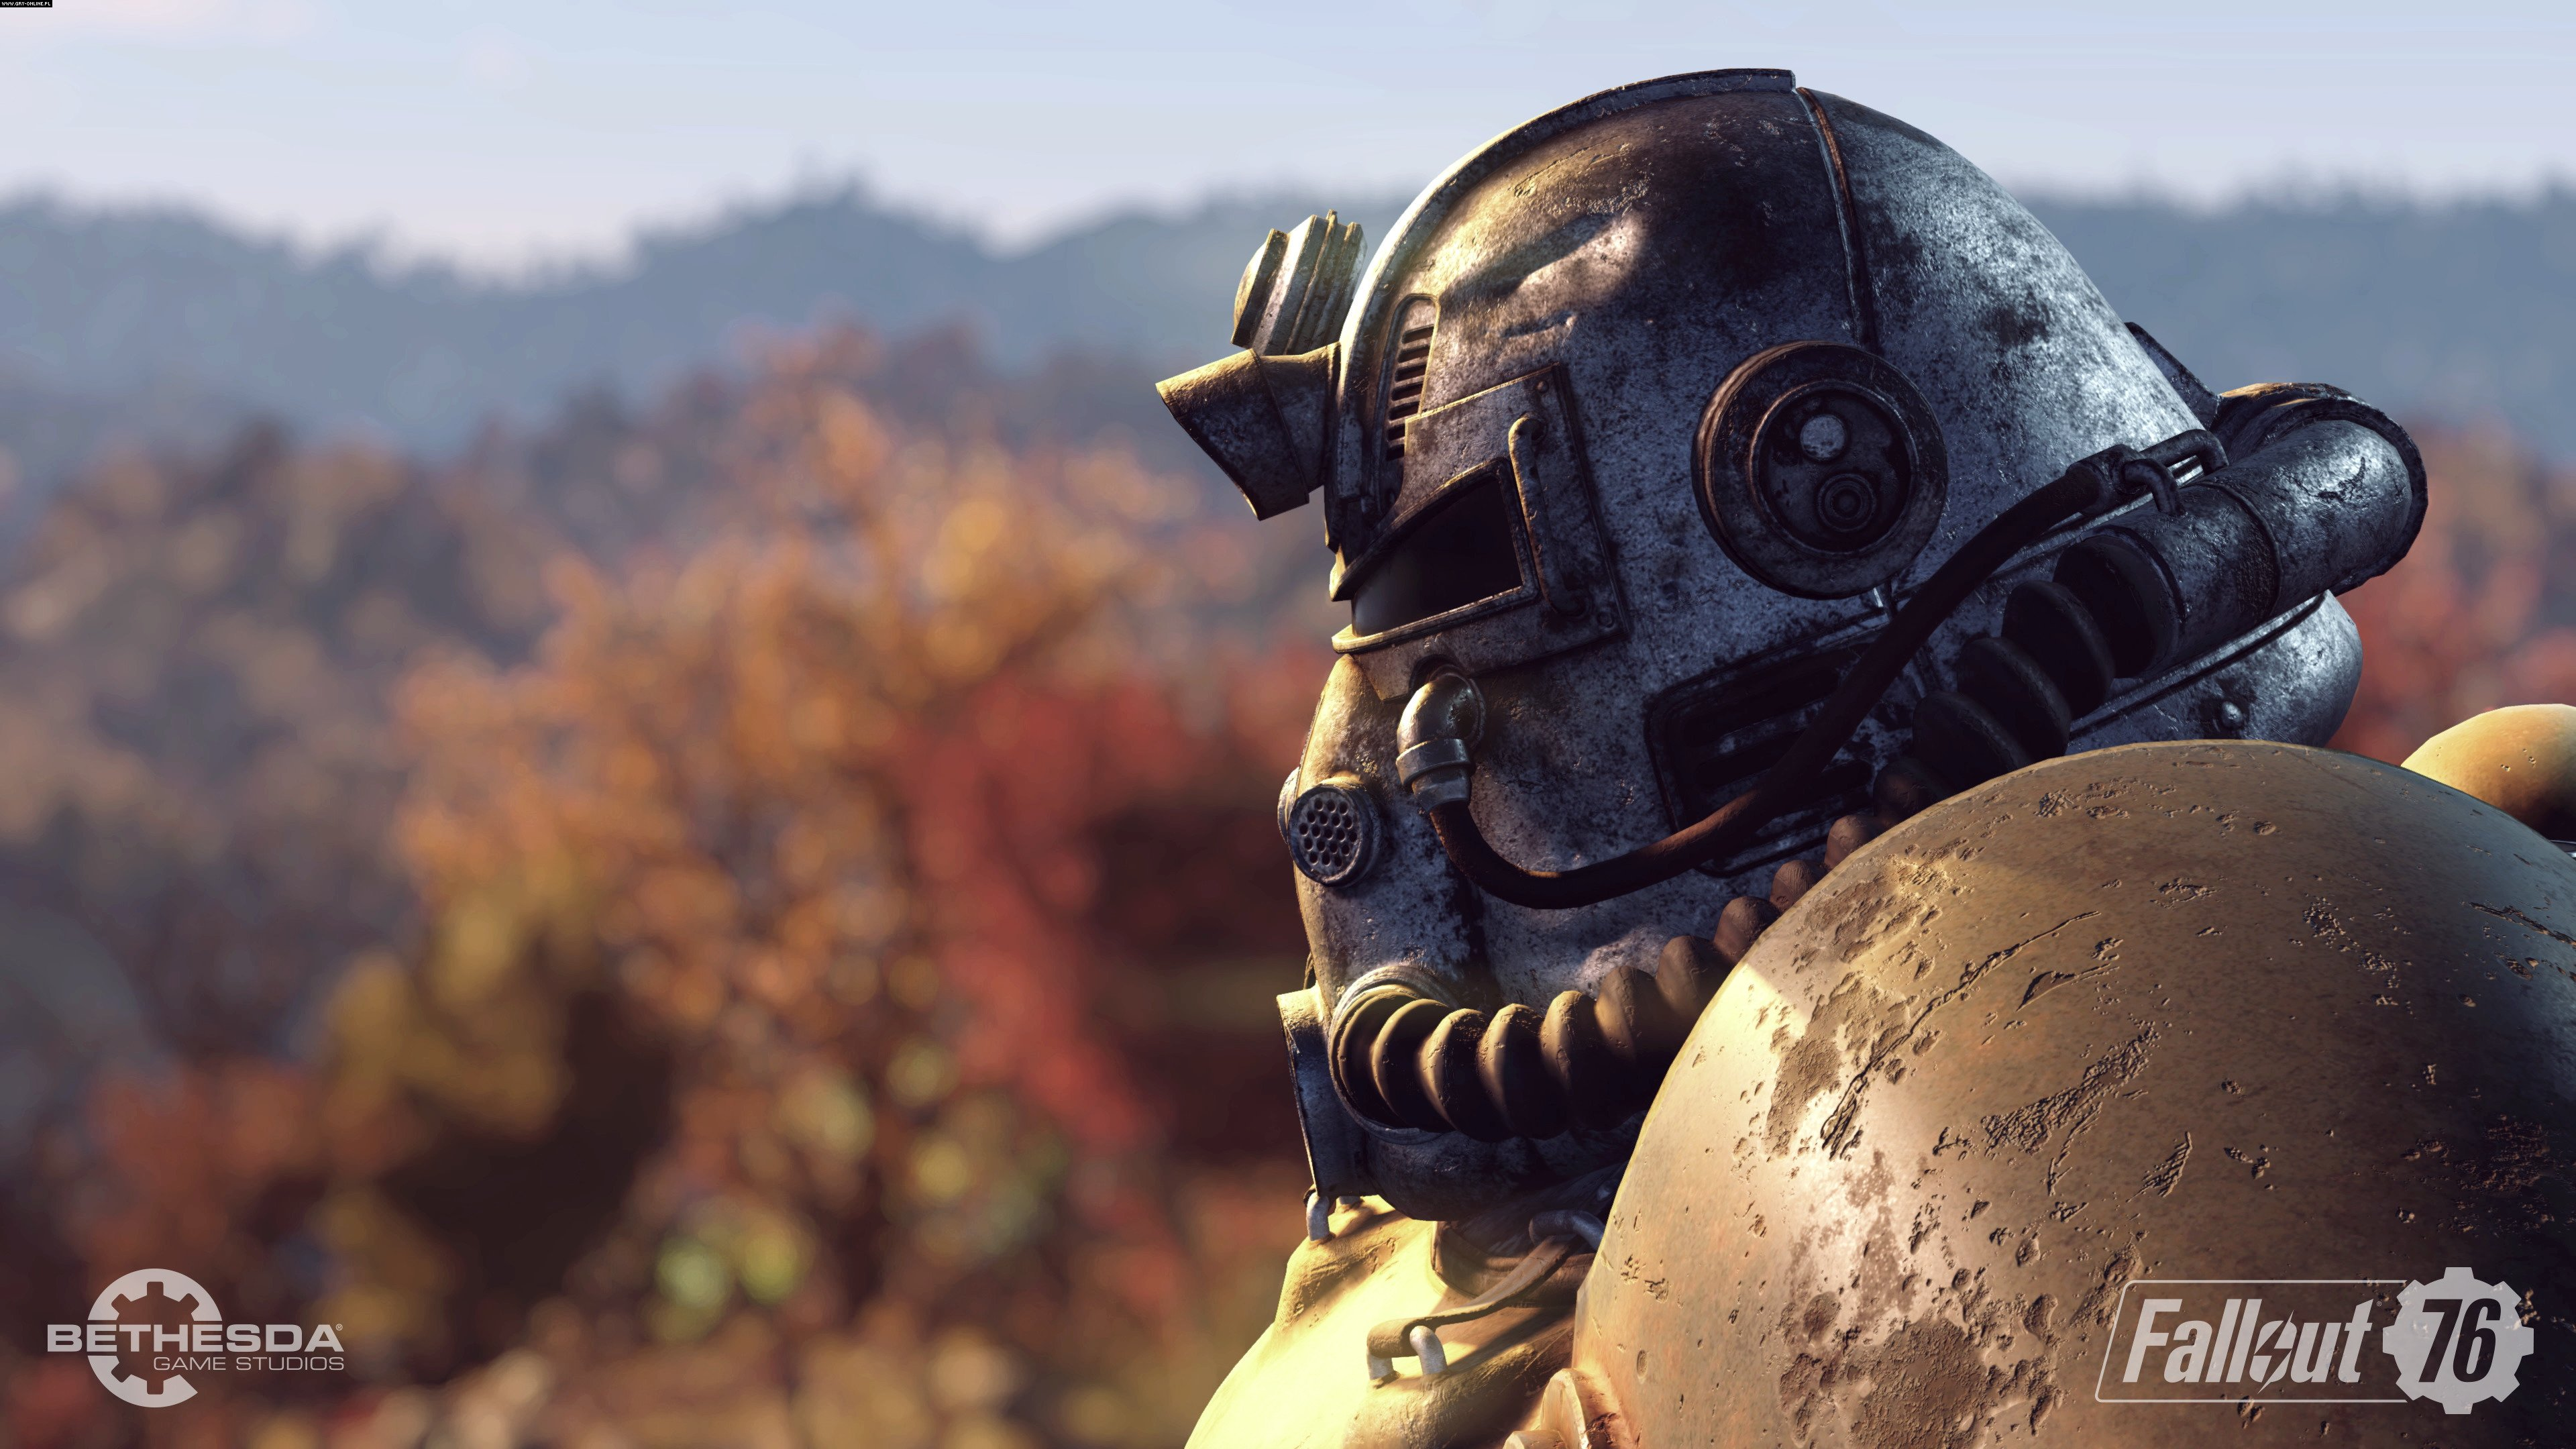 Fallout 76 PC, XONE, PS4 Games Image 7/28, Bethesda Softworks